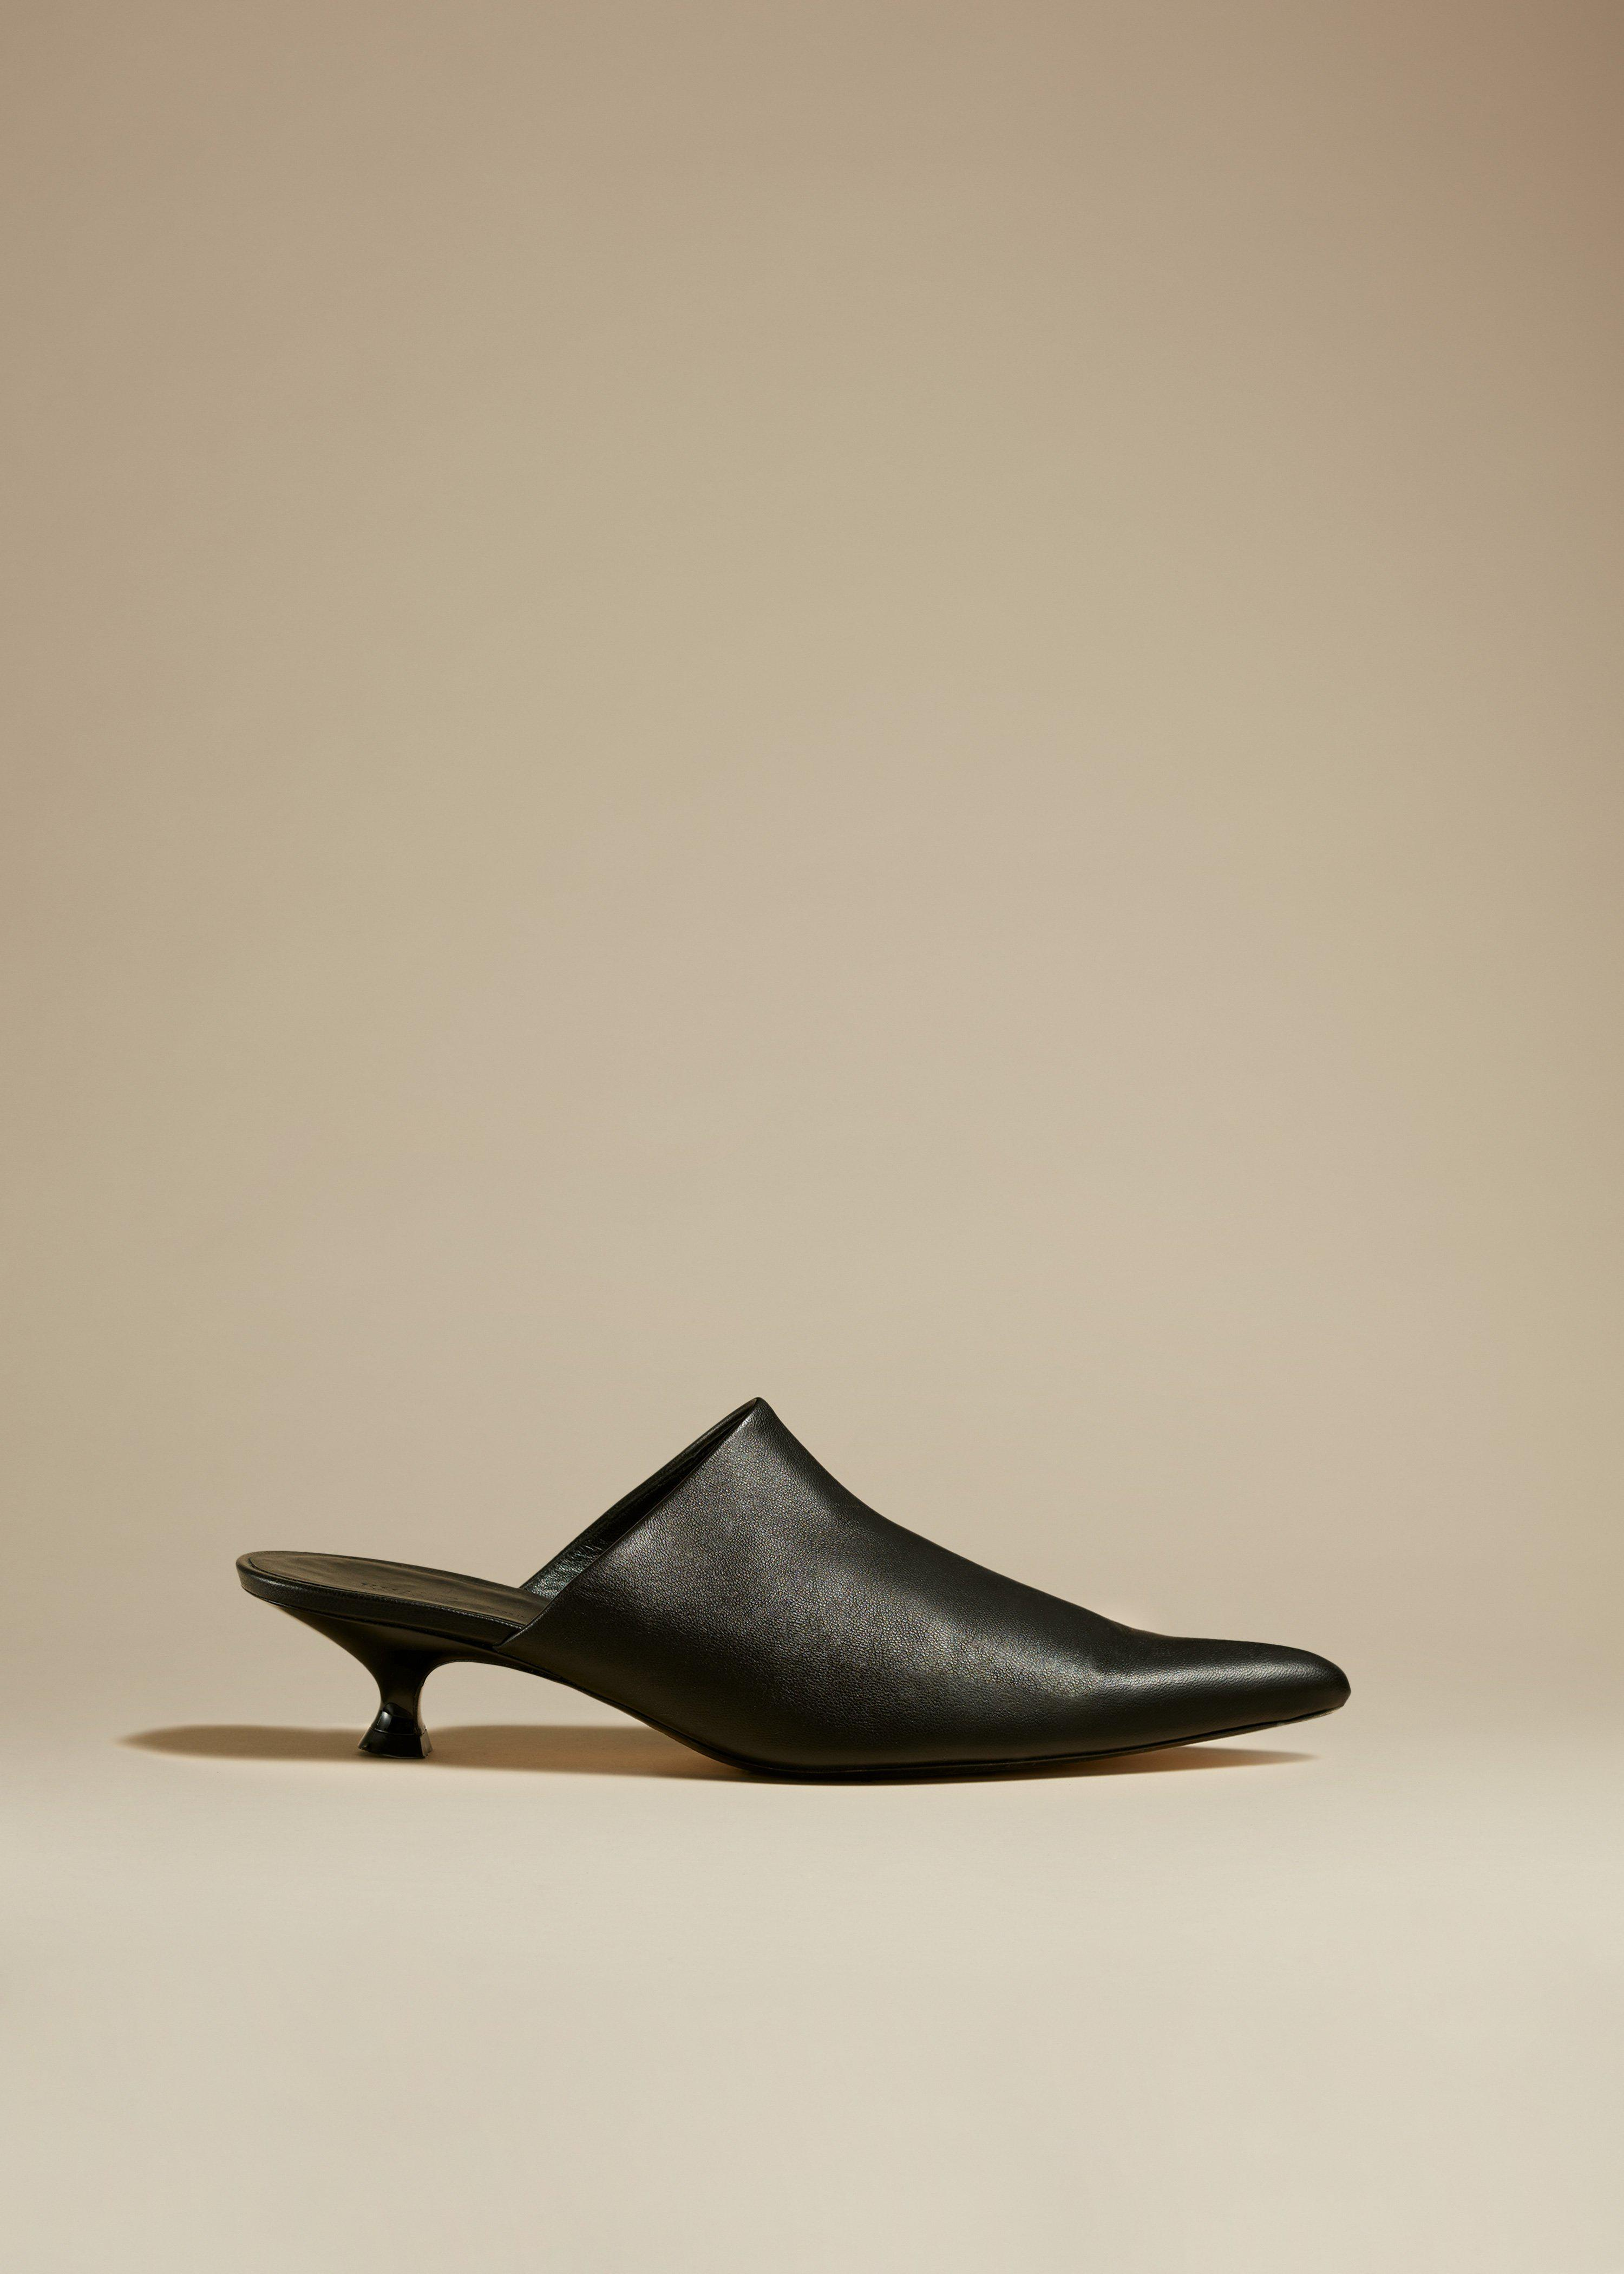 The Volosa Mule in Black Leather